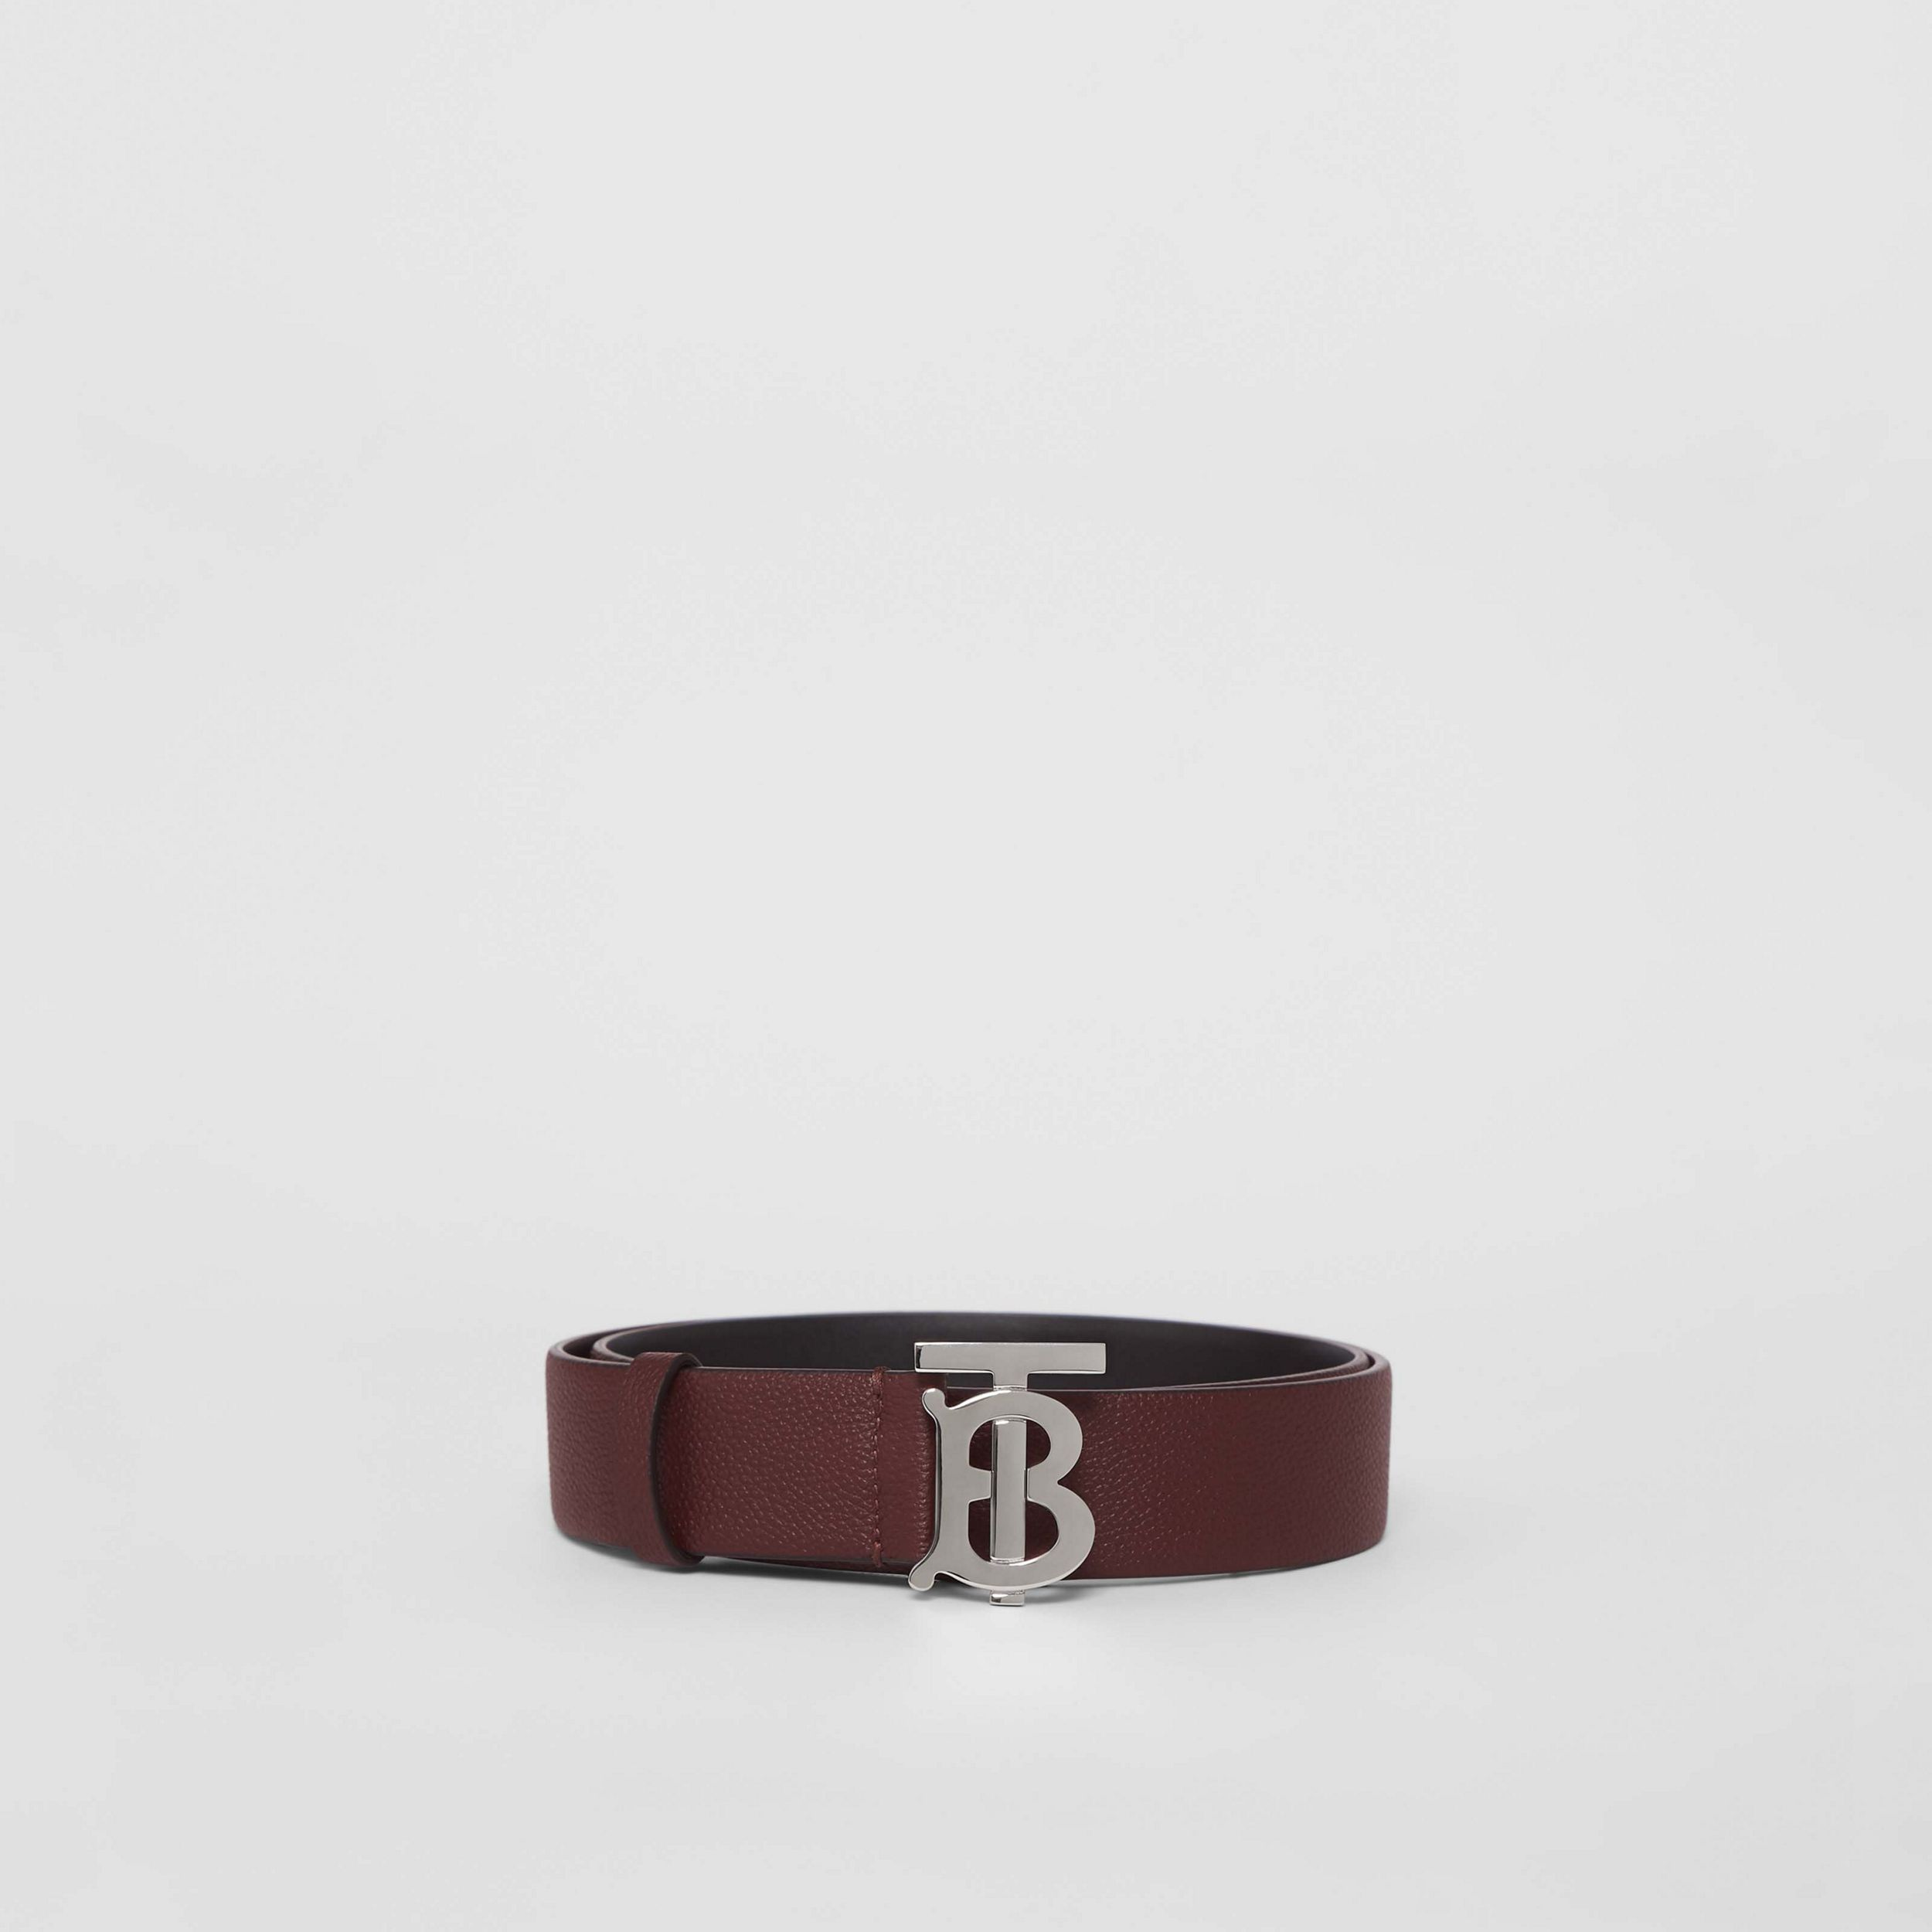 Monogram Motif Leather Belt in Oxblood - Men | Burberry - 4